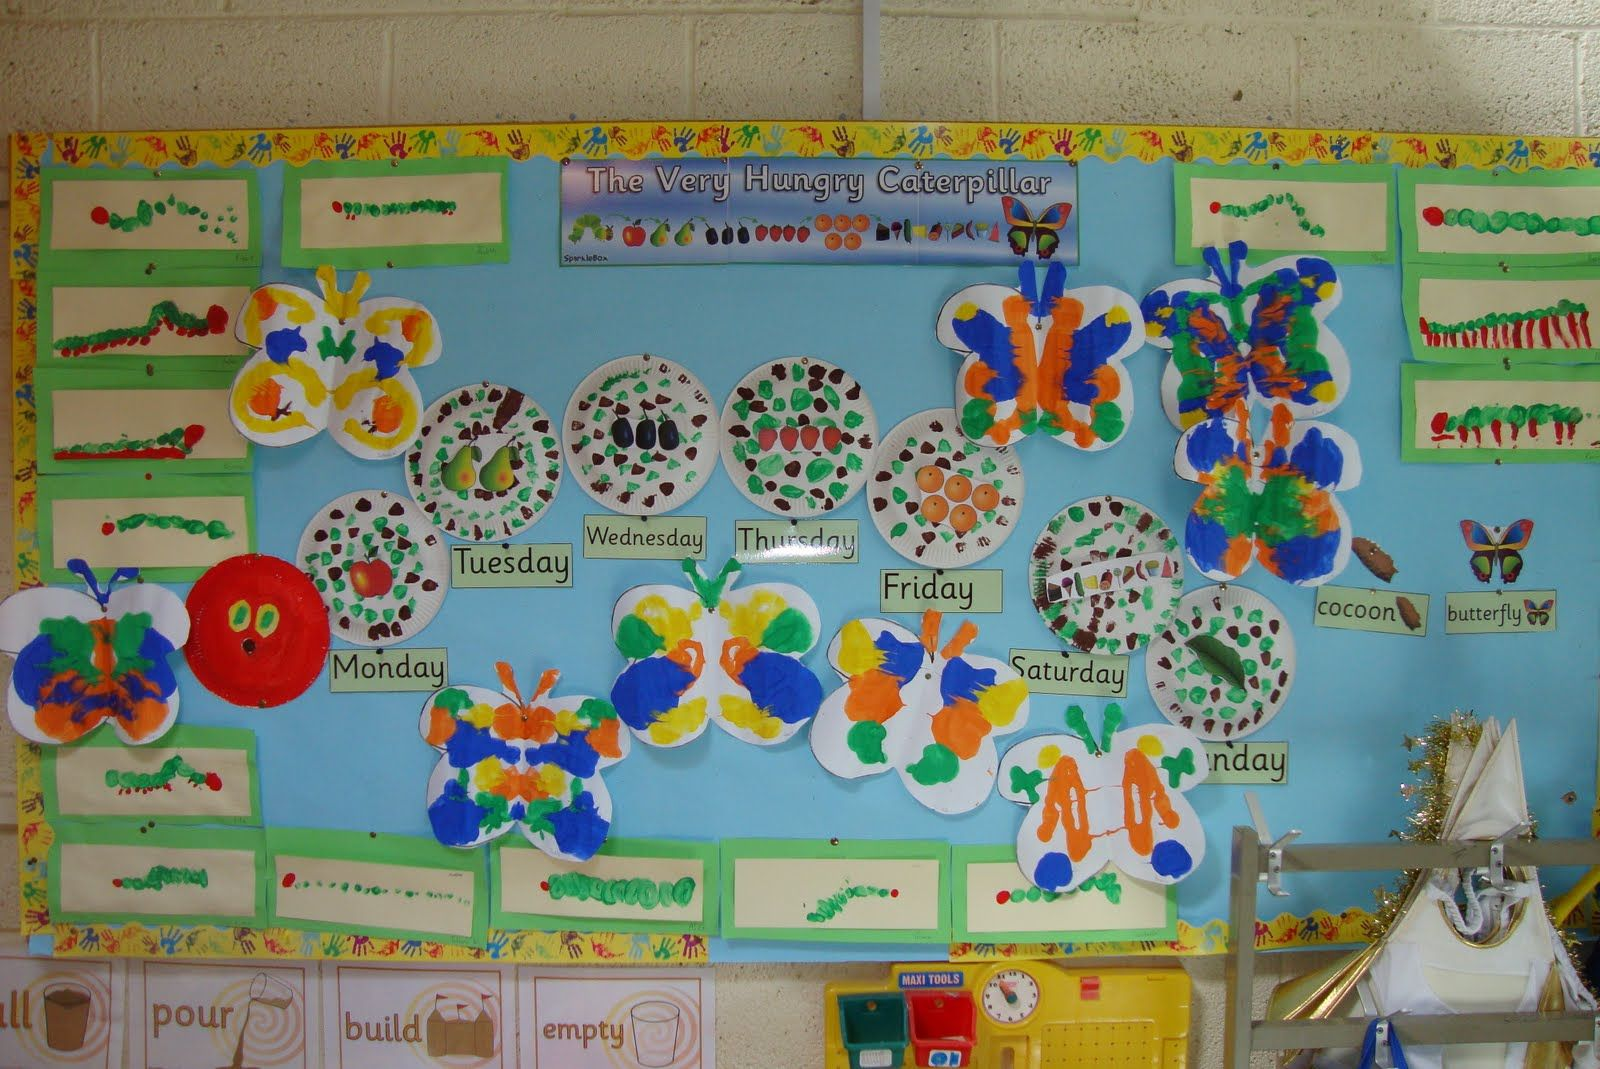 Junior Classroom Ideas : Very hungry caterpillar class ideas and drama page